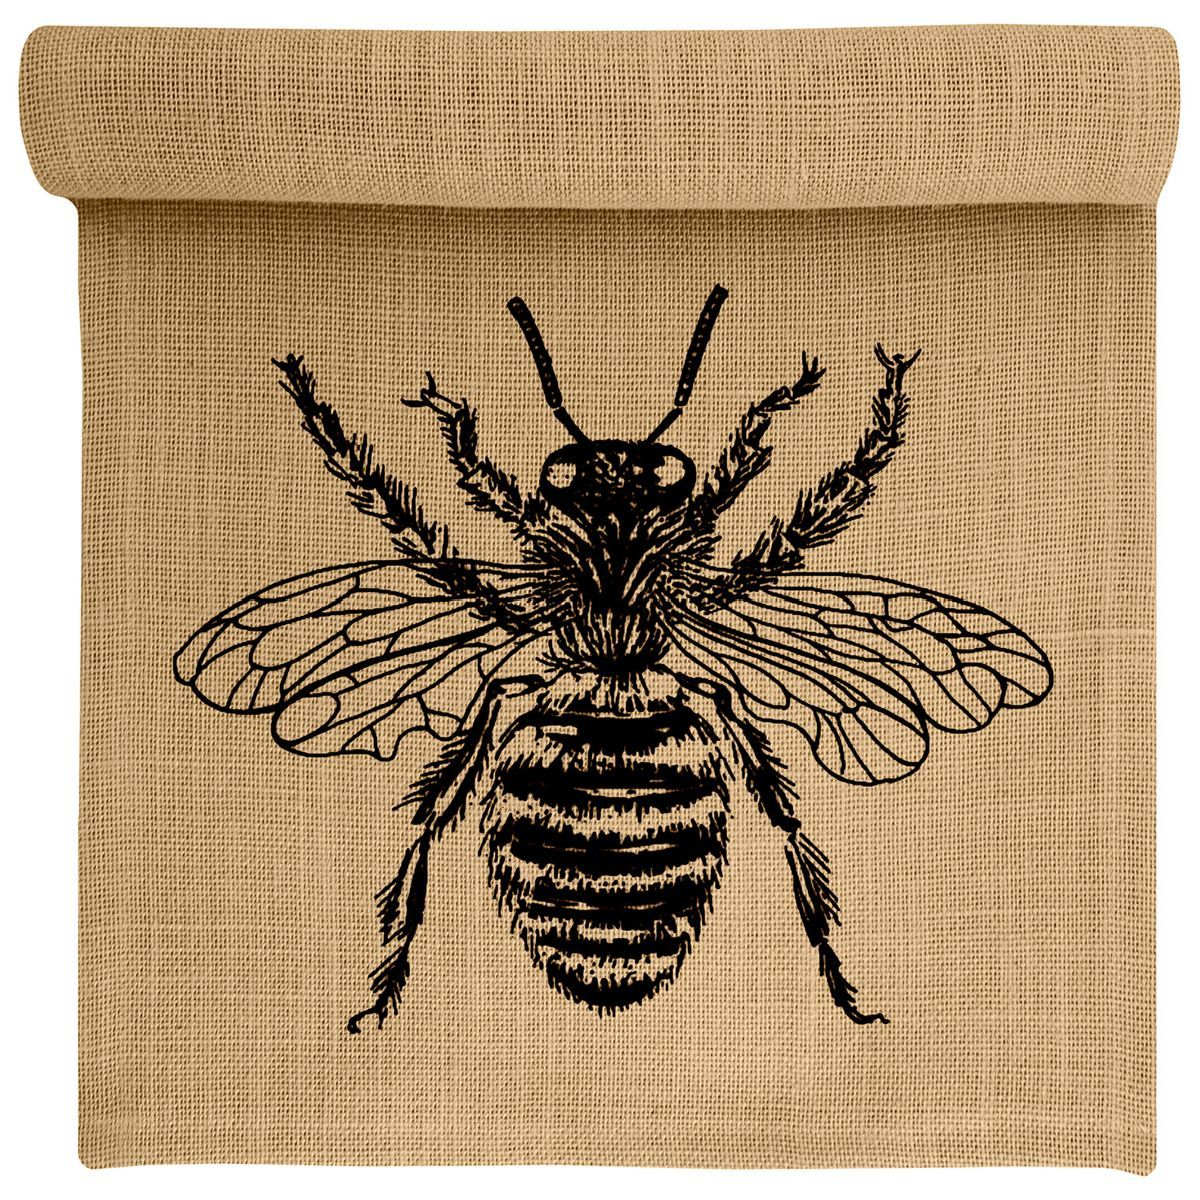 Houzz handmade burlap table runner with bee on it photo